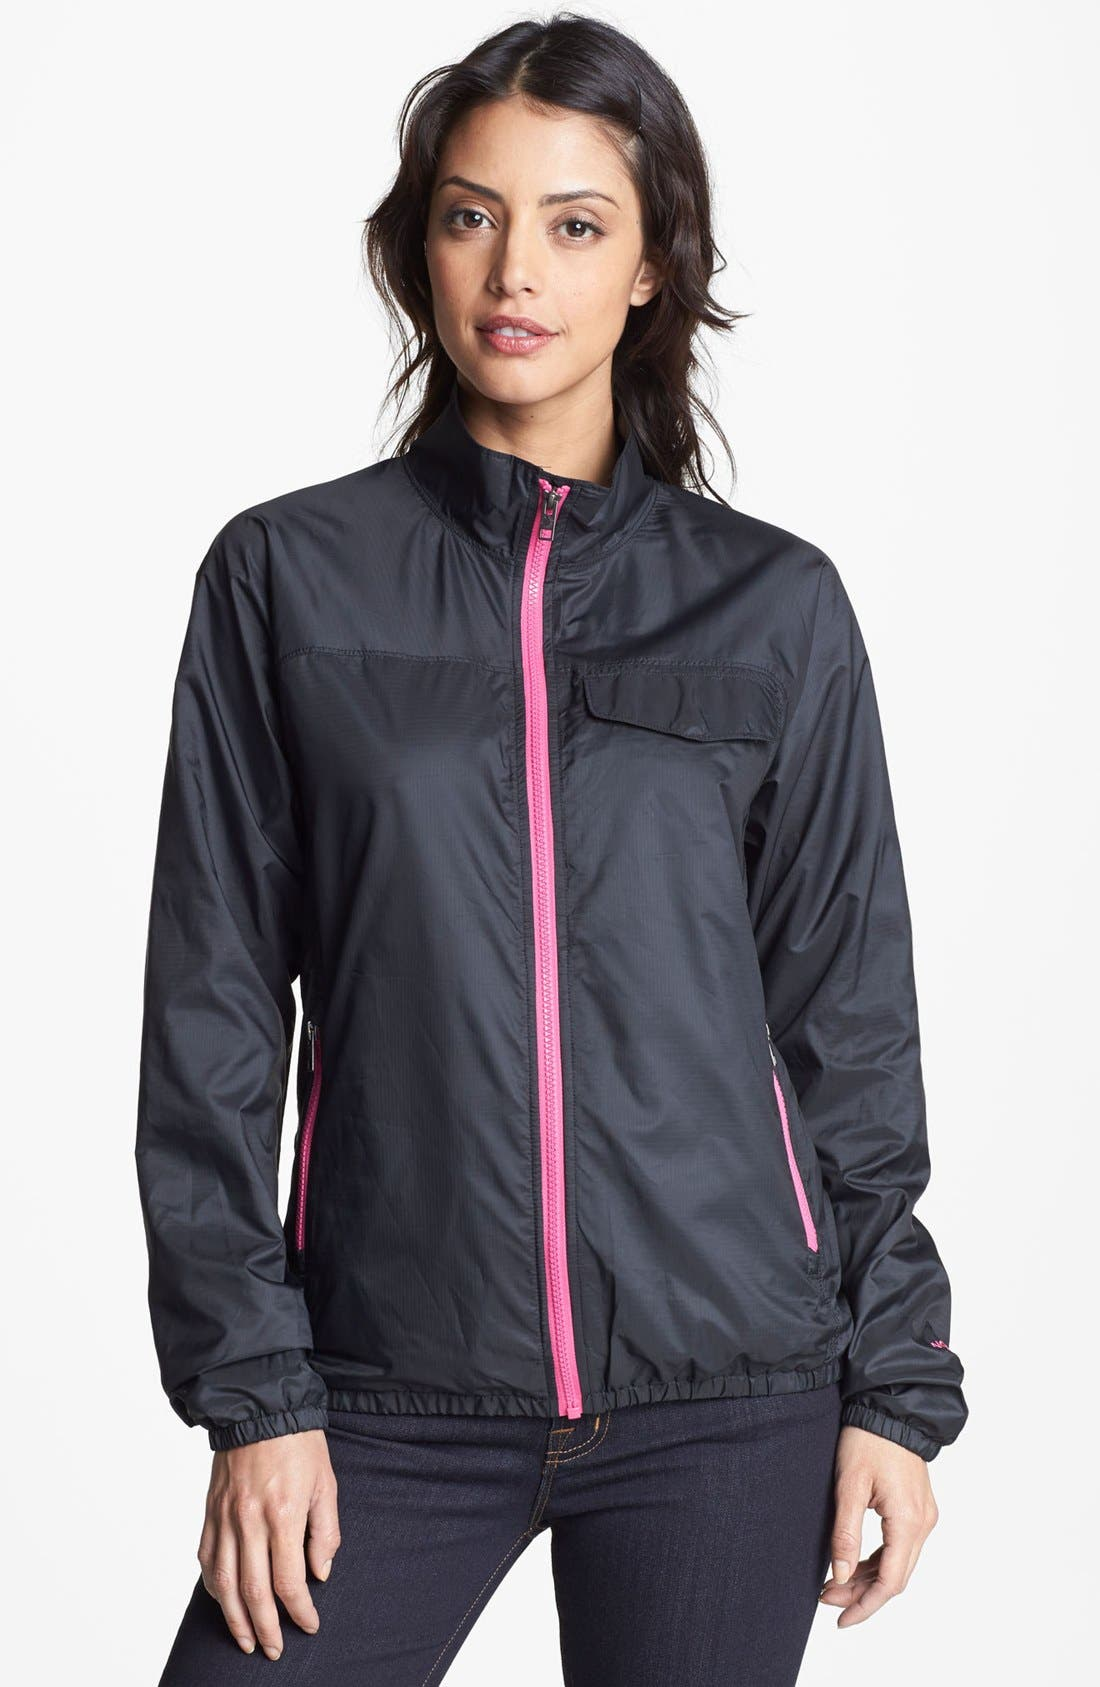 Alternate Image 1 Selected - The North Face 'Penelope' Jacket